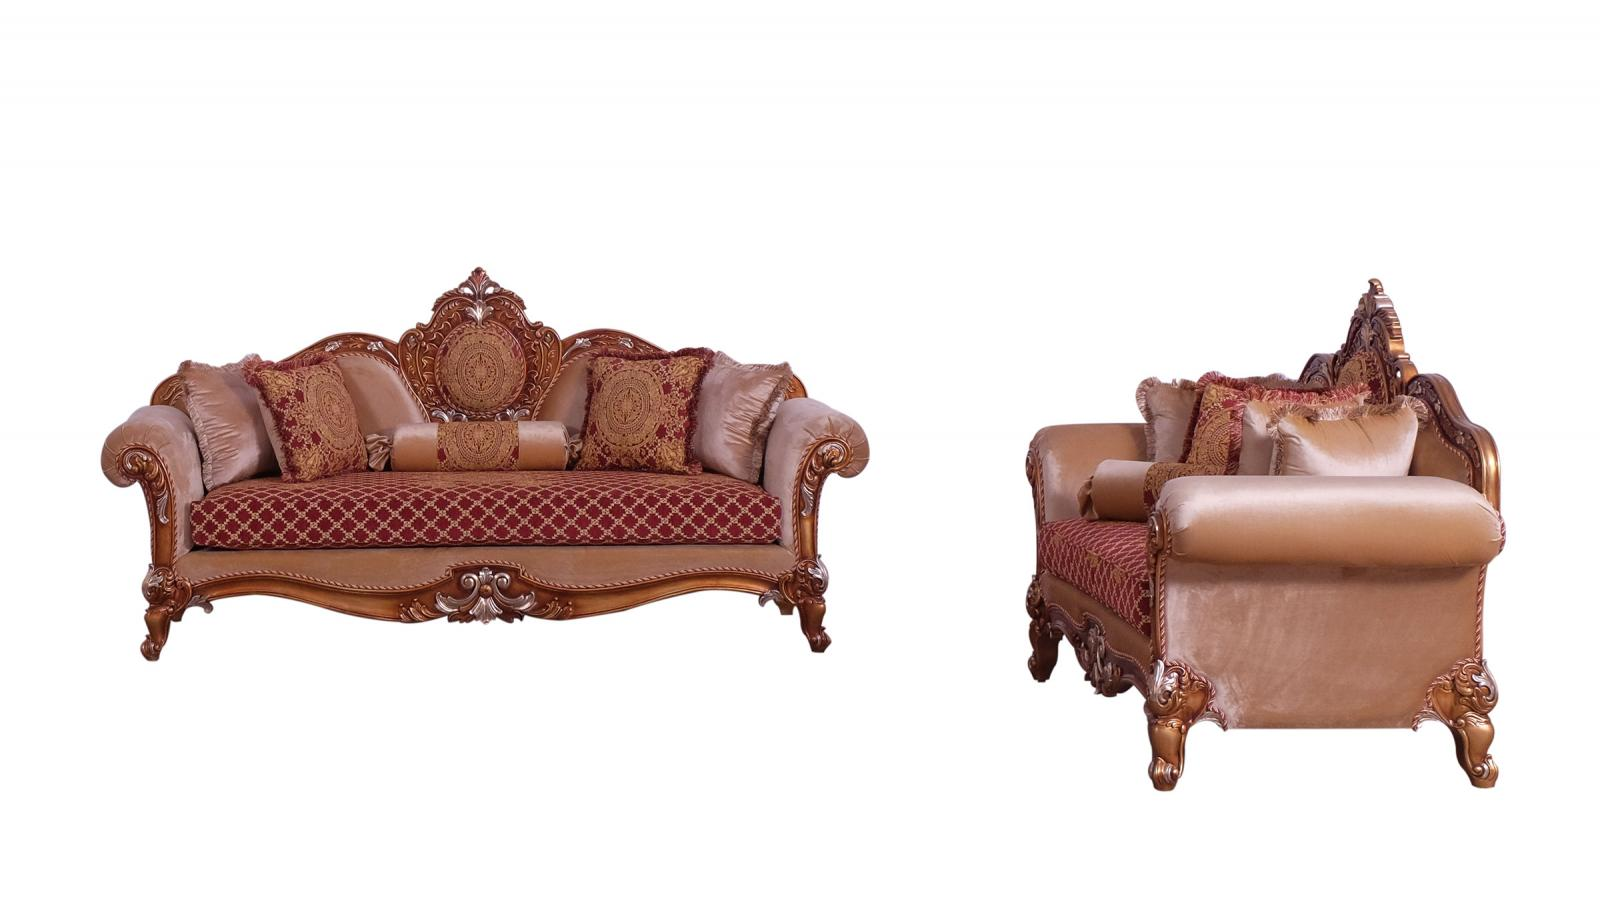 Classic  Traditional Gold  Red  Silver Wood  Solid Hardwood and Fabric Sofa Set EUROPEAN FURNITURE 41022-S-Set-2